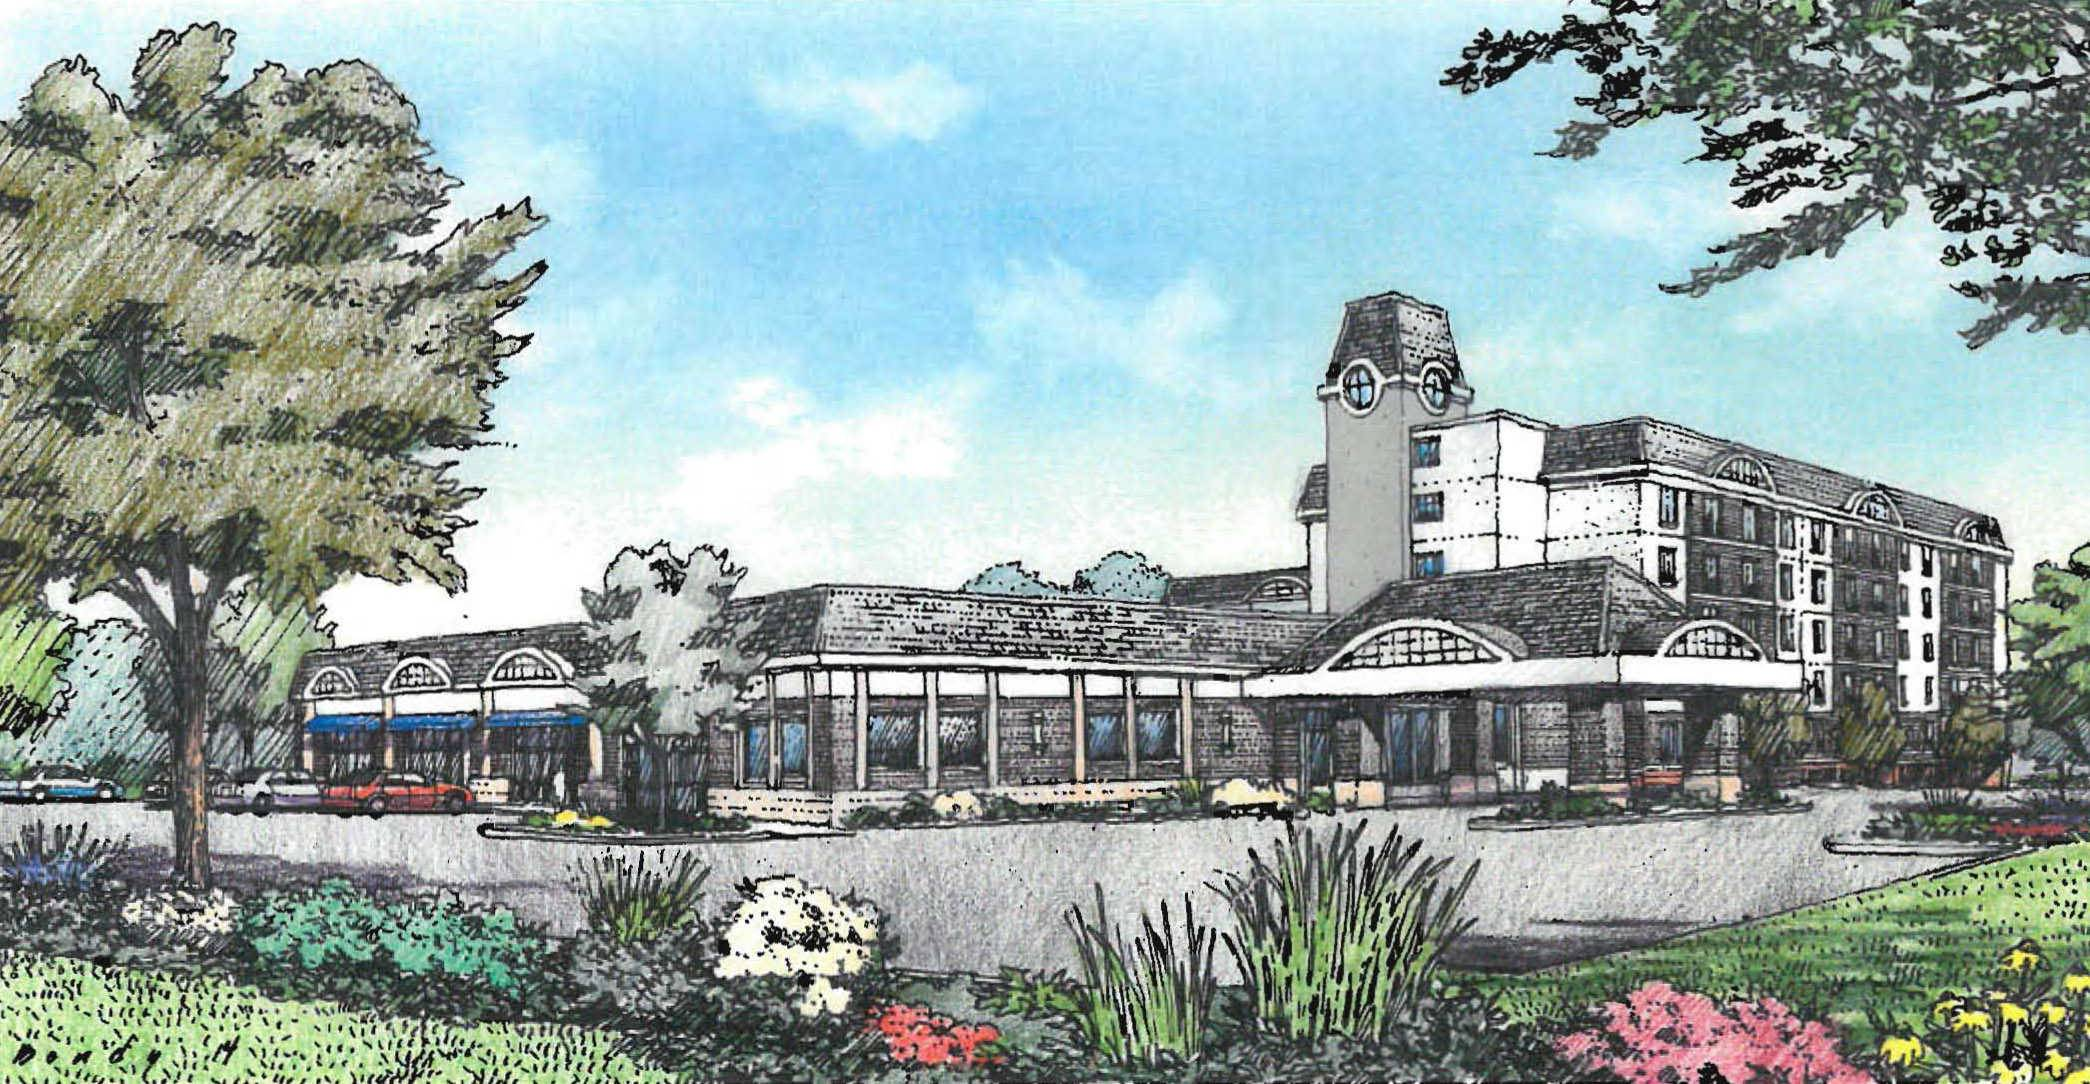 This artist's rendering shows what a new senior living center in the former Hotel Bollero building in Palatine would look like.